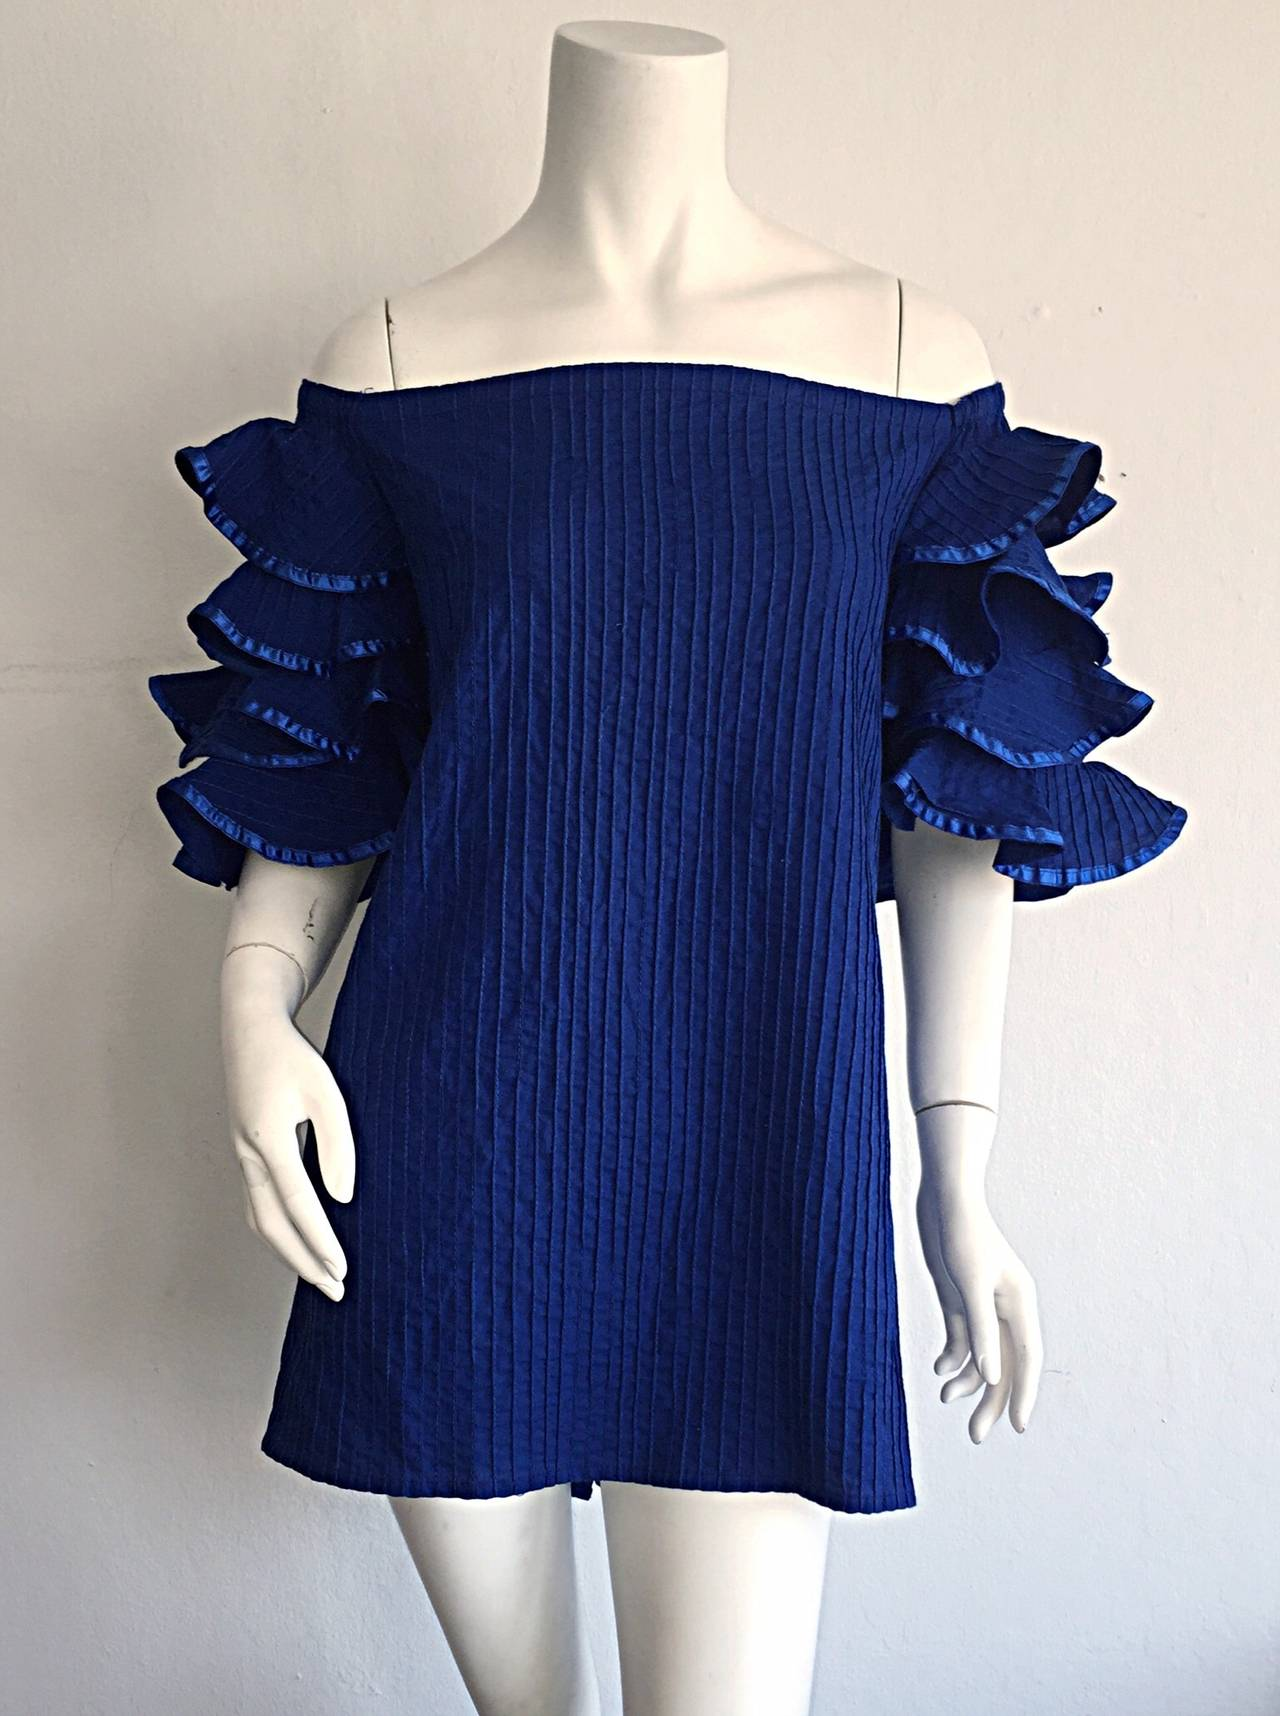 Absolutely beautiful vintage Tachi Castillo cotton blouse! VIbrant blue color, with ruffle sleeves. Buttons up the back. Can be worn on, or off the shoulders. Looks great alone, or belted. Perfect with shorts, jeans or a skirt. In great condition.